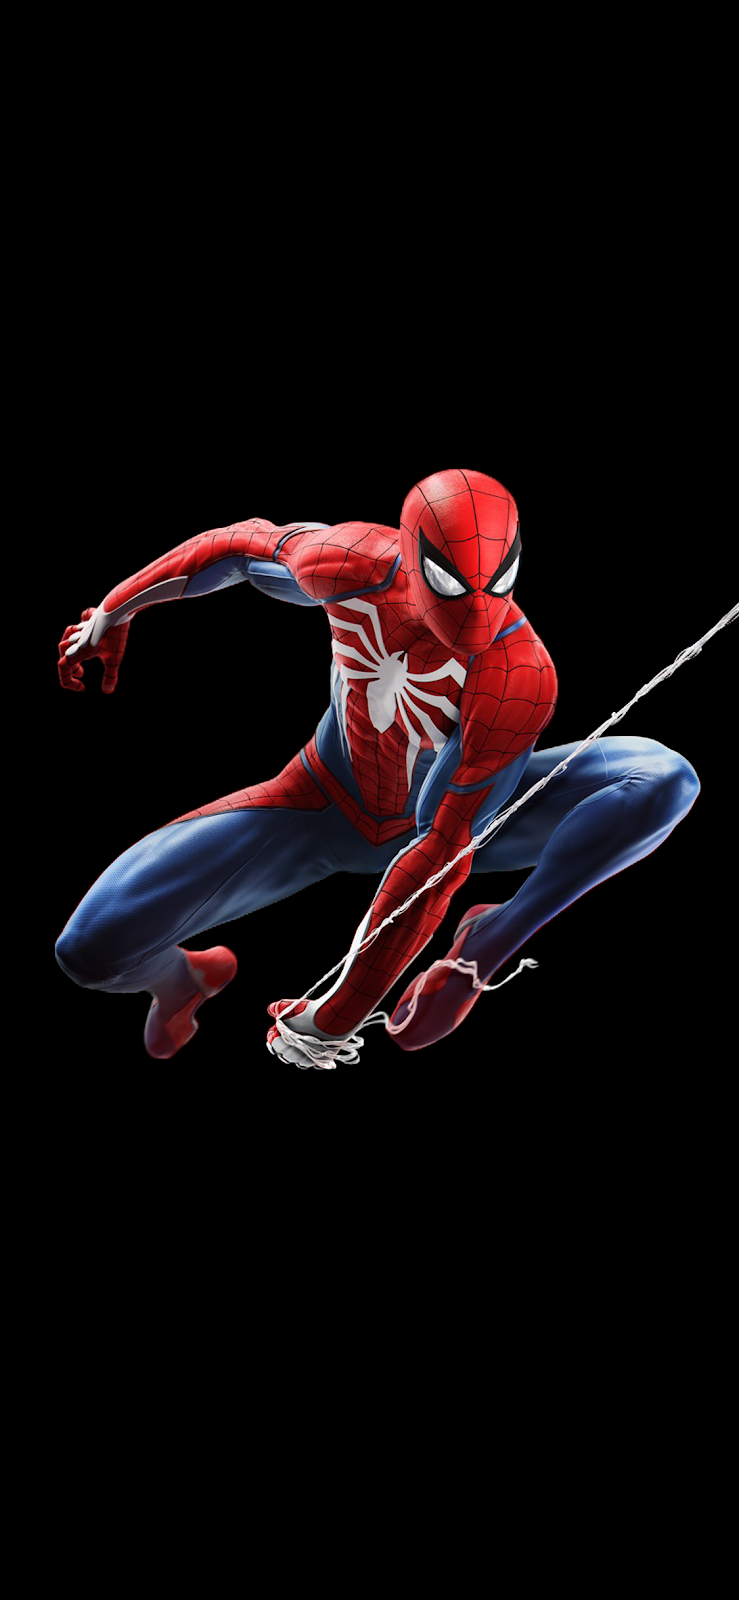 Spider Man V2 Iphone X Saving Battery For Amoled Display Spiderman Superhero Wallpaper Cool Wallpapers For Phones